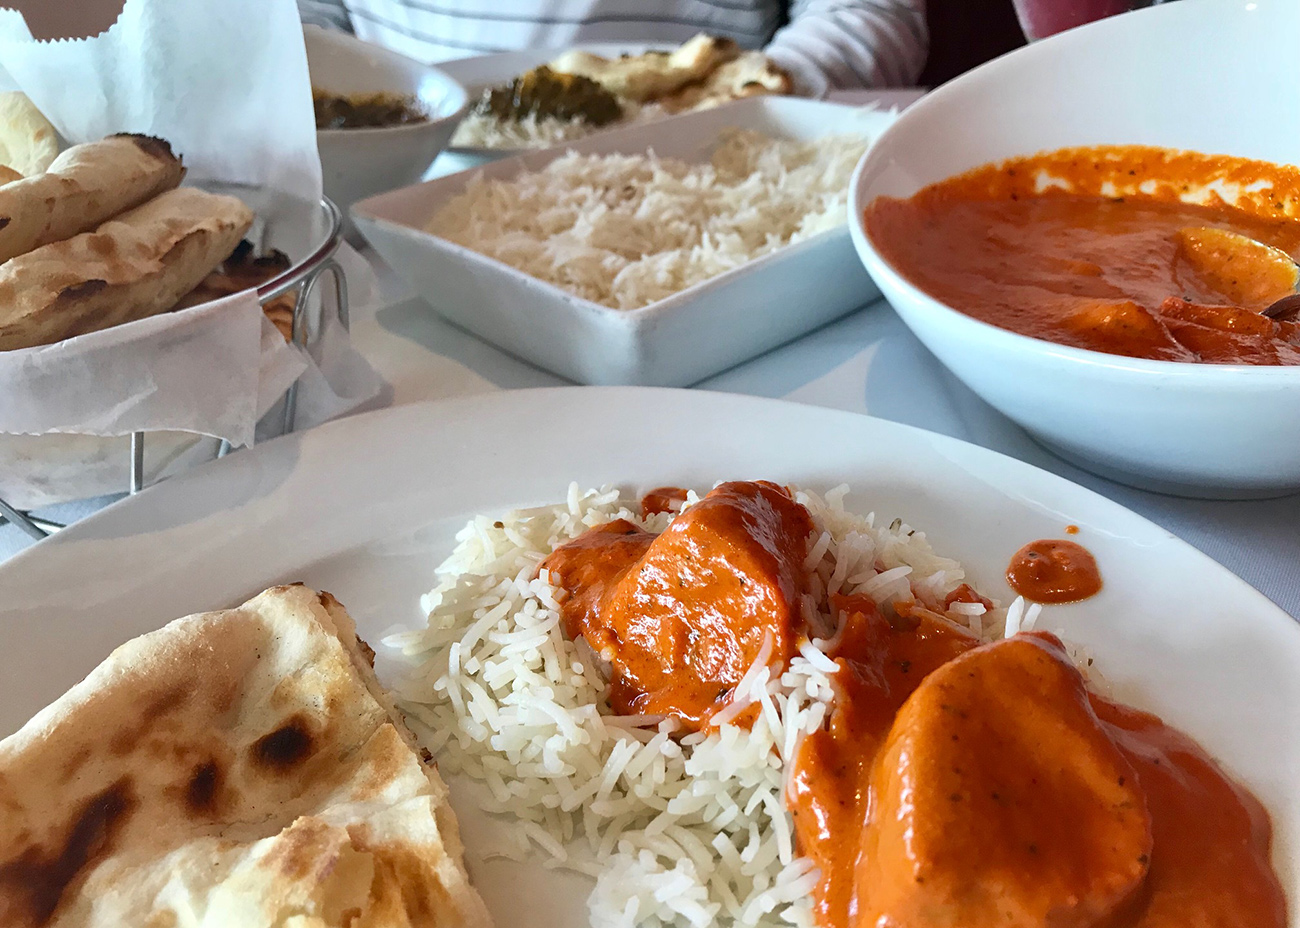 Does everyone know about Copper's $11-$17 customizable lunch special with soup or salad, an entree, rice and naan?